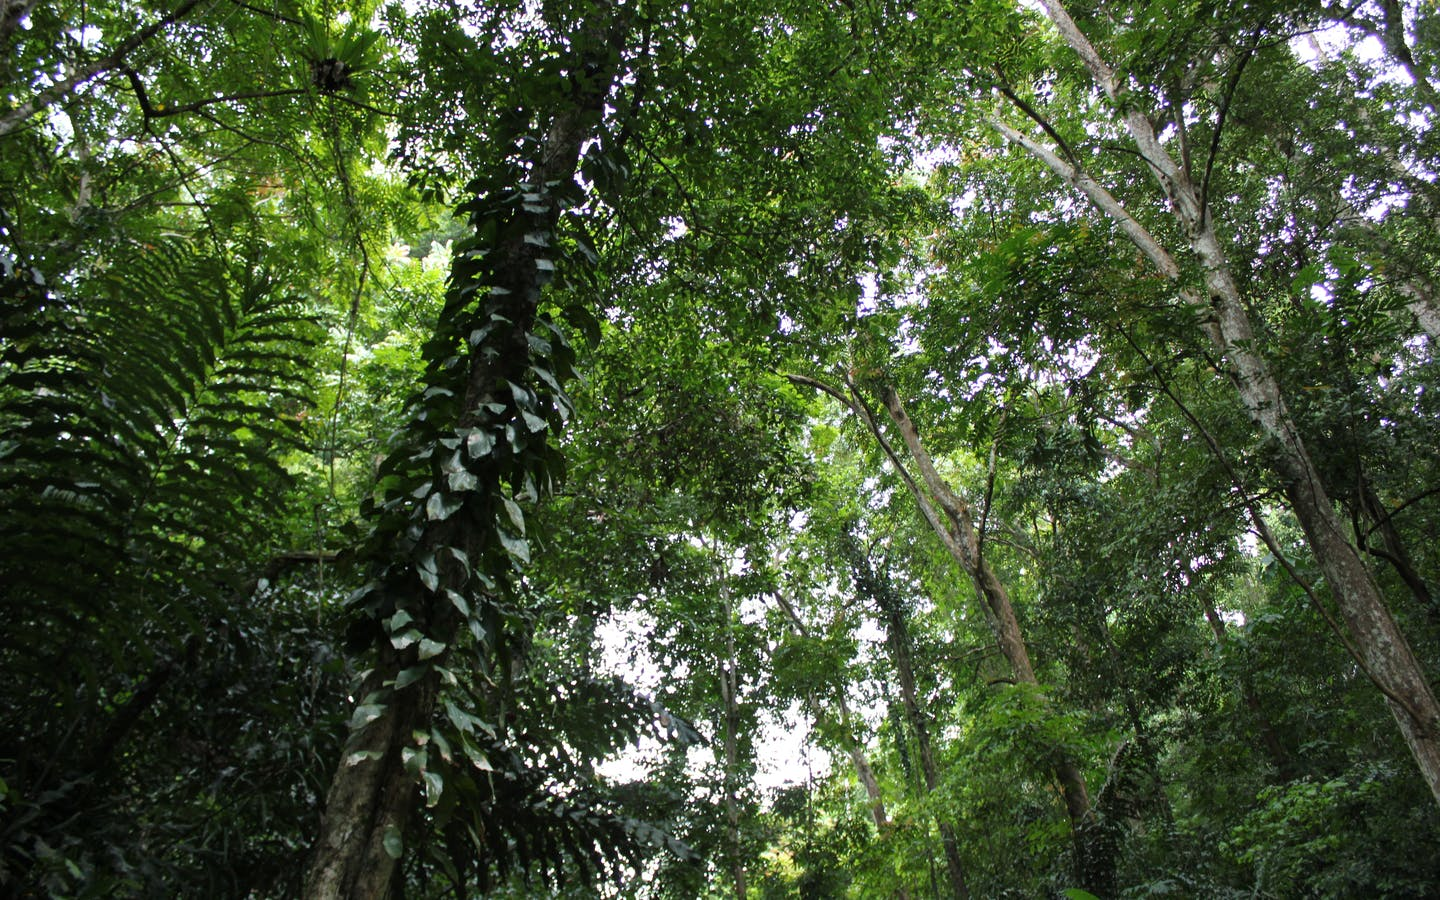 Primary forest cover in the Mount Mantalingahan Protected Landscape, Panalingaan, Palawan.